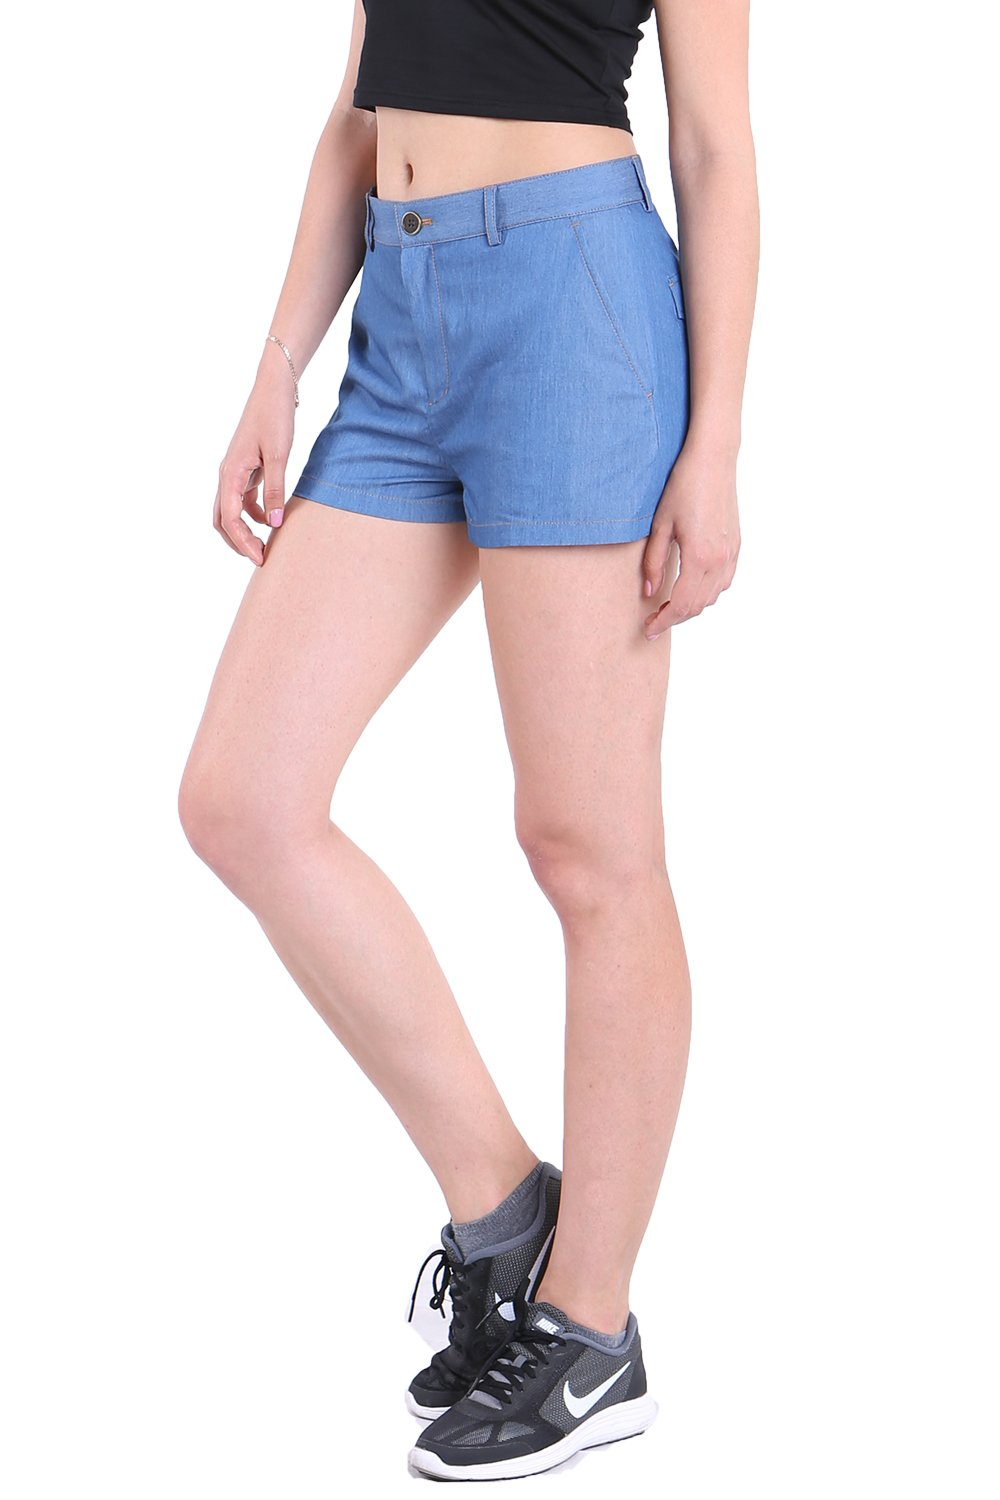 Fyriona Women's Denim Blue Jean Shorts Mid Waisted Loose